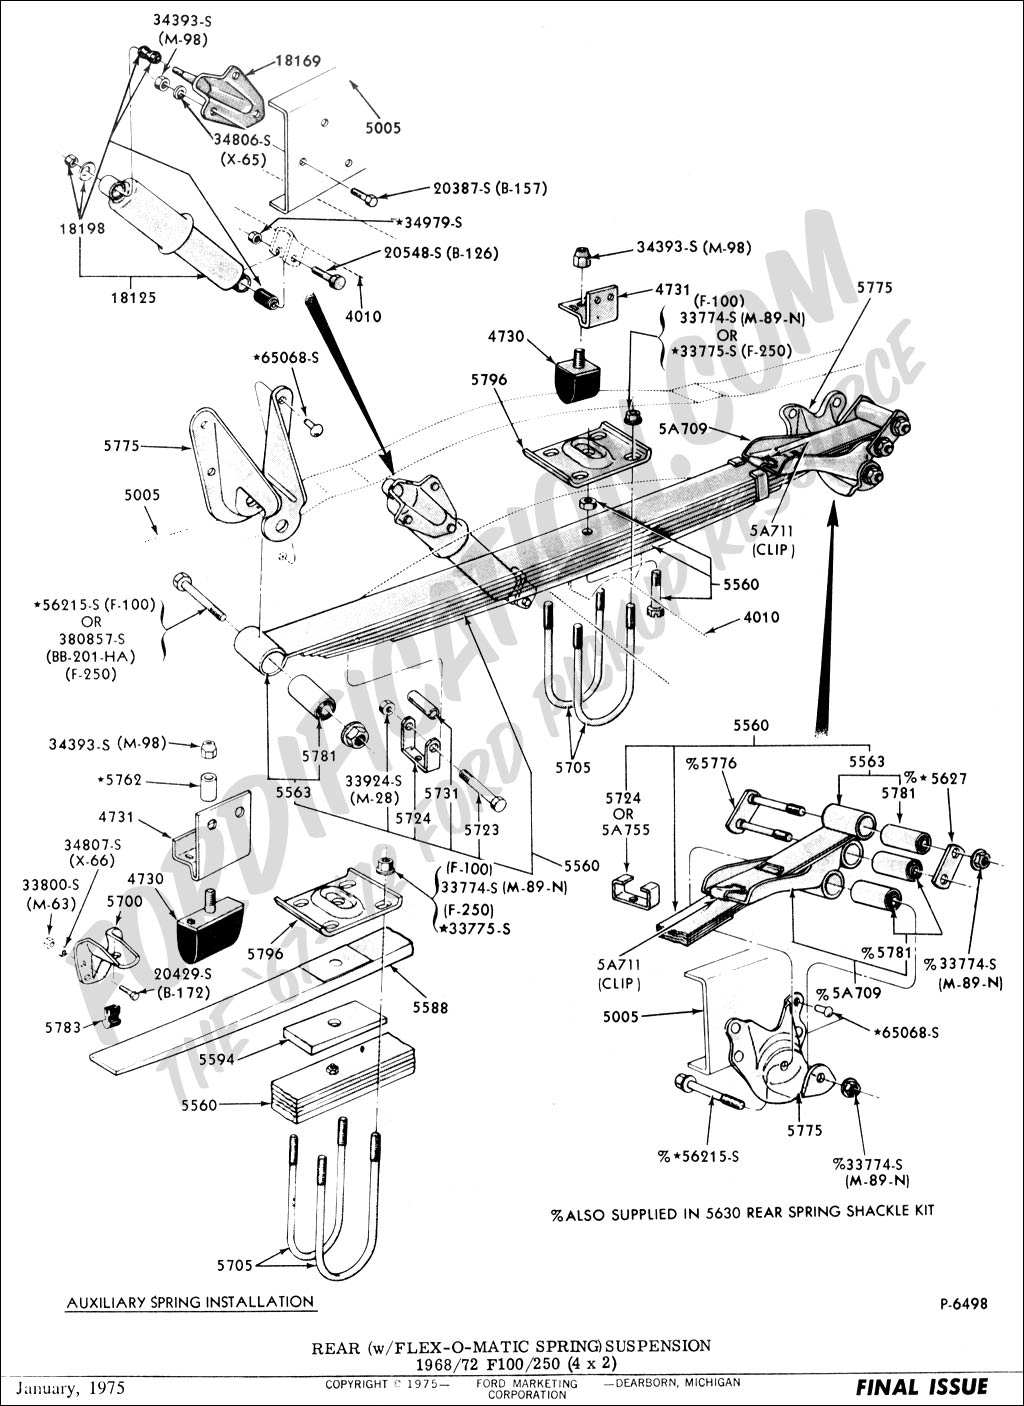 diagram] 2003 f250 suspension diagram full version hd quality suspension  diagram - typewalmartwiring.plurifit.fr  wiring and fuse database